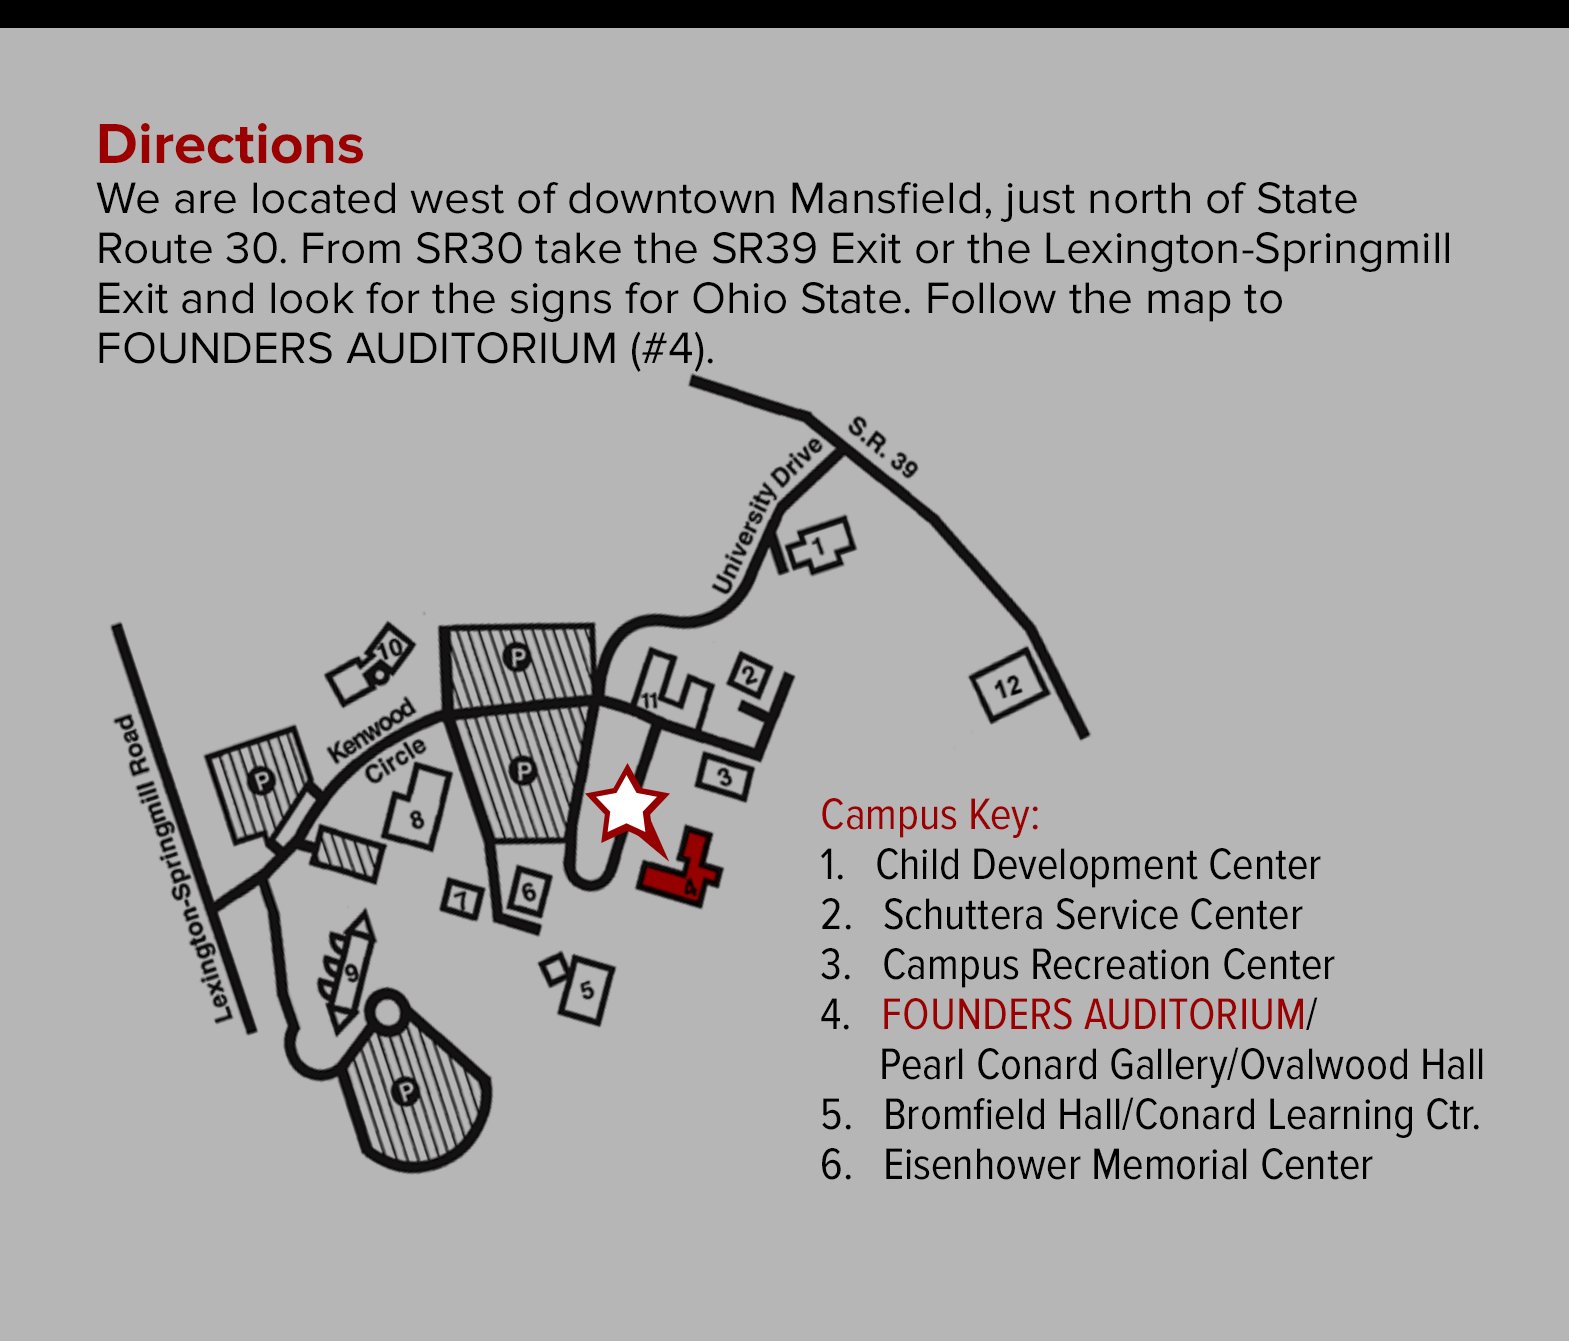 The Ohio State University At Mansfield Theatre & Stage ... Osu Columbus Campus Map on osu map columbus ohio, u of m campus map, ohio university map, columbus state community college campus map, osu smith lab map, osu medical center map, duke university campus map, mercer university main campus map, university of dayton campus map, ok state campus map, osu map.pdf, osu rv parking map, tiffin university campus map, ohio state map, university of michigan campus map,